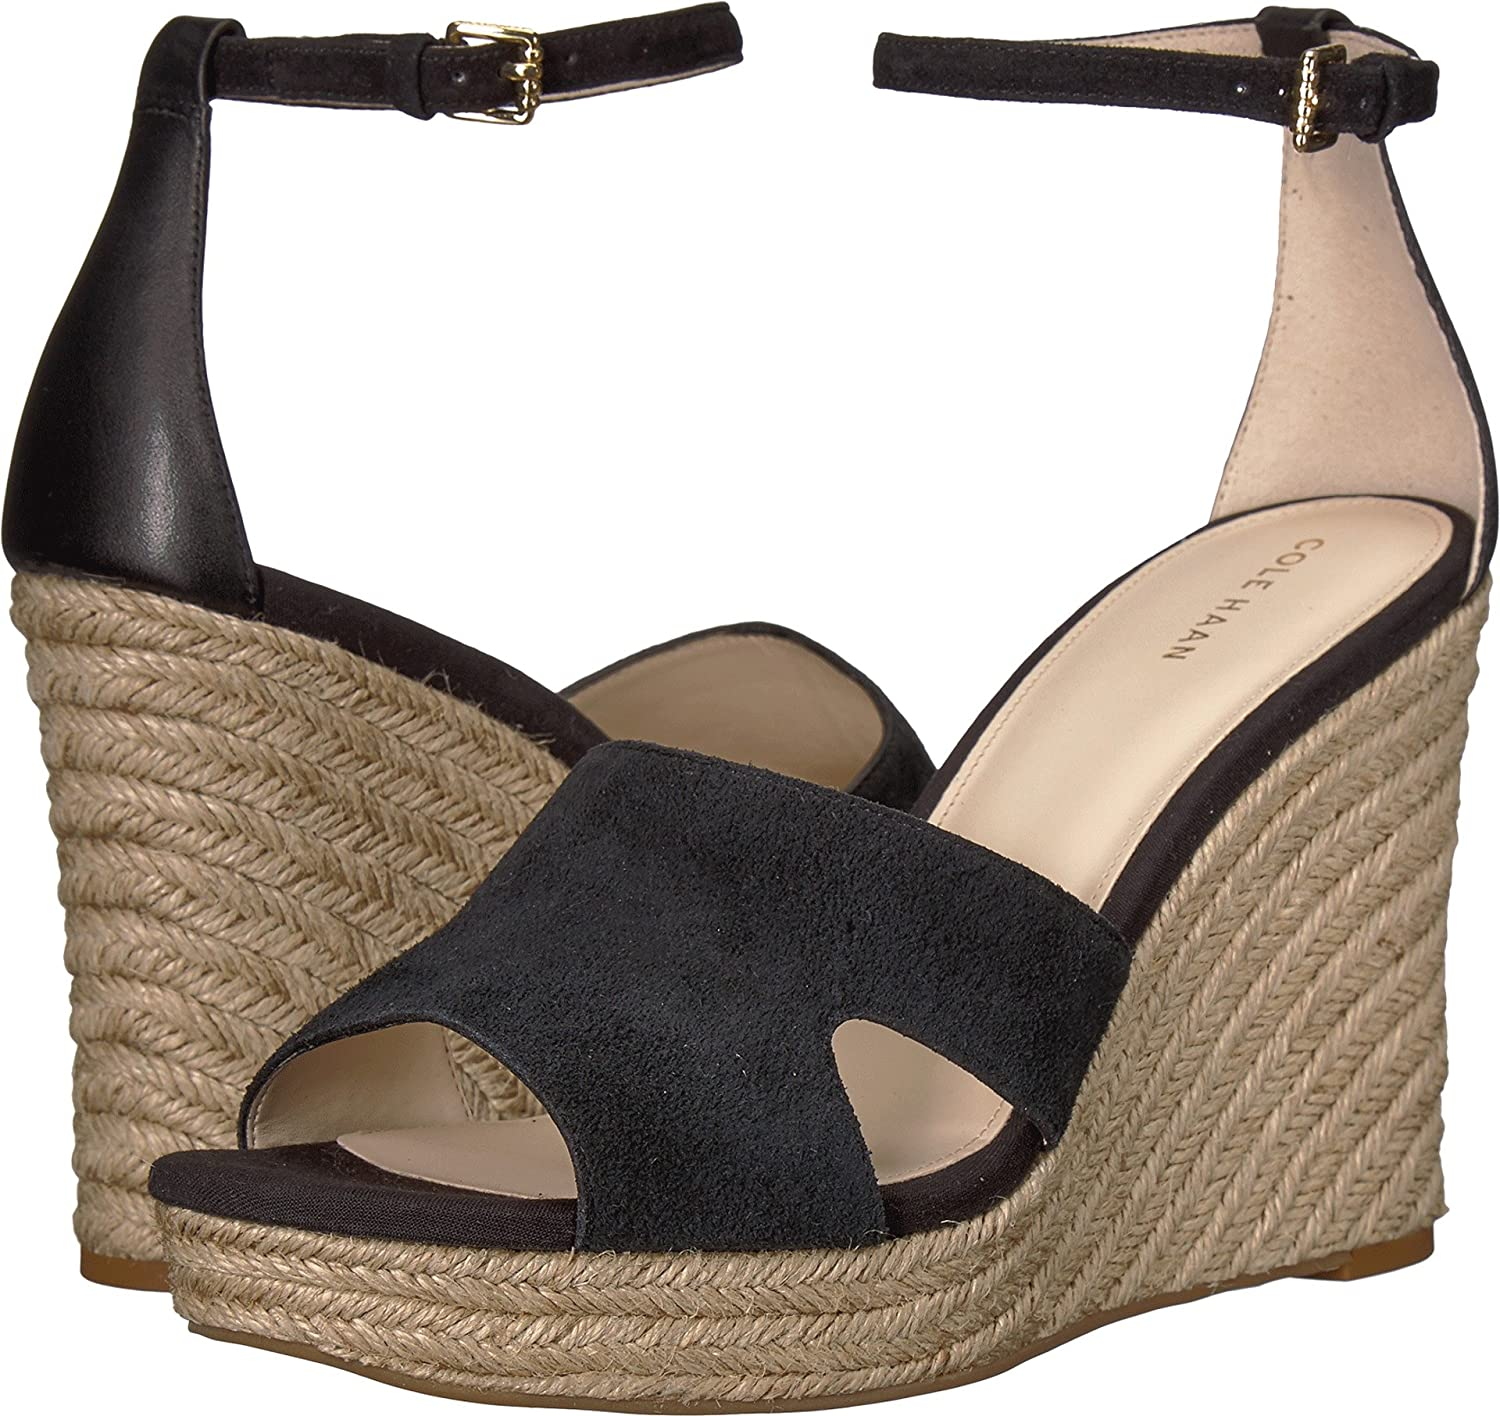 b8e93c30b79 Amazon.com | Cole Haan Women's Giselle High Espadrille Wedge ...